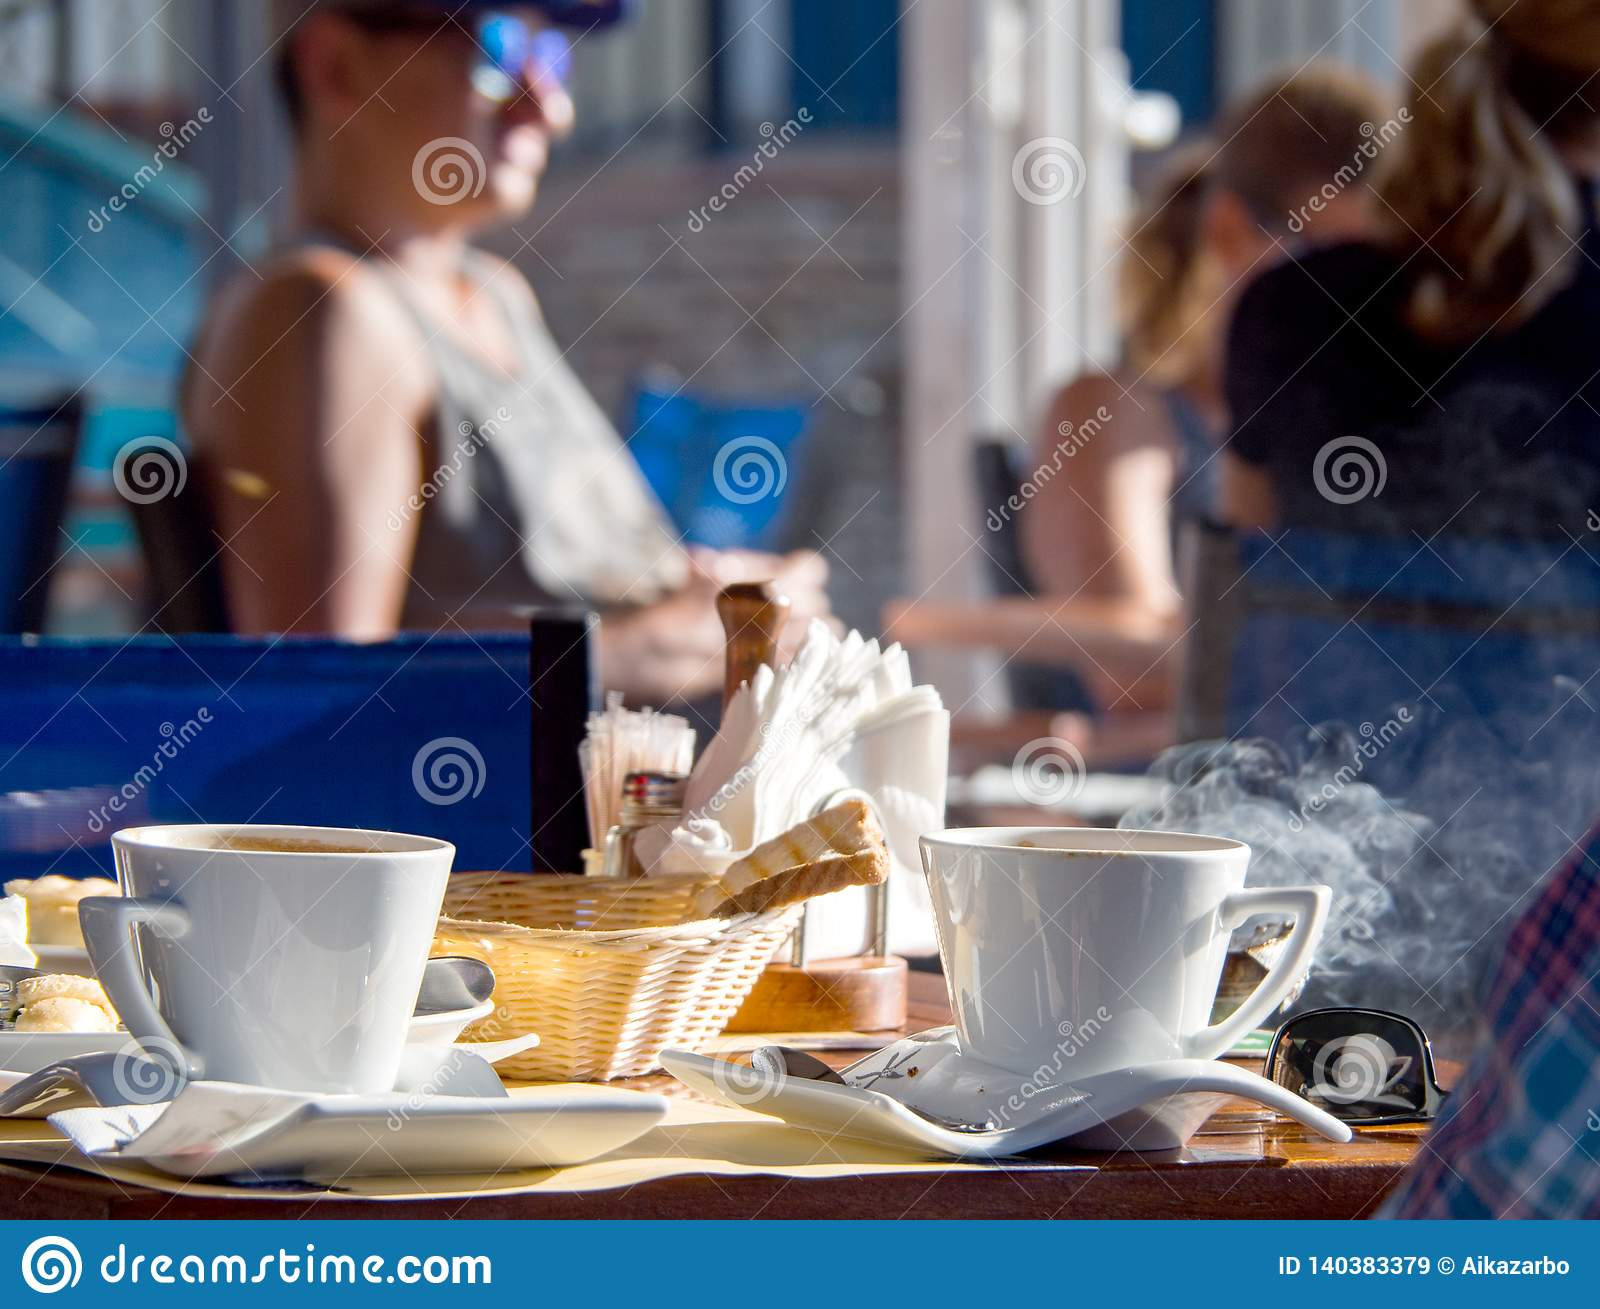 Morning breakfast with Greek coffee in a cafe on the island of Kefalonia, Greece